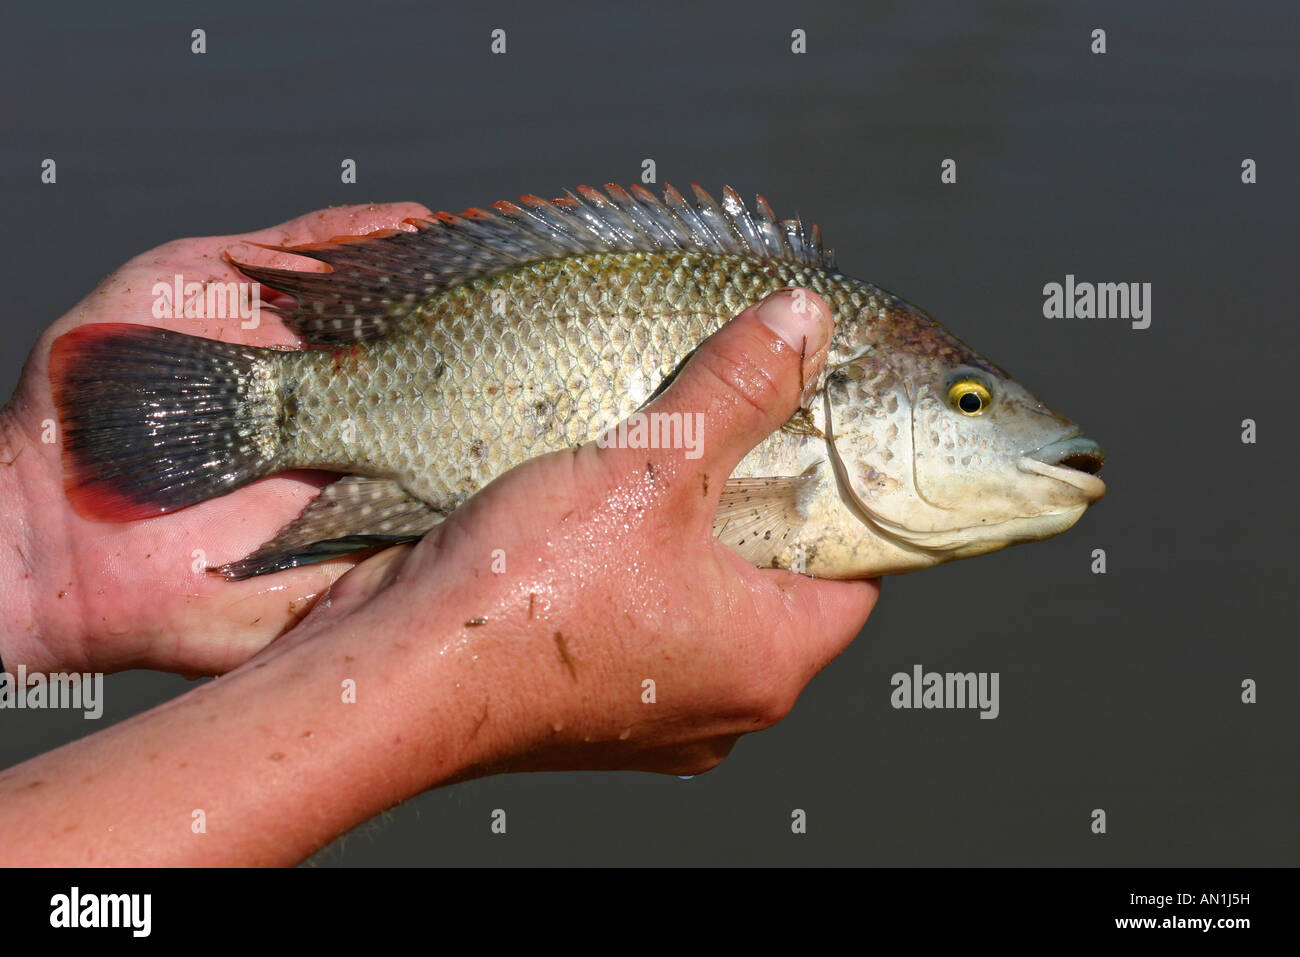 Freshwater fish in south africa - Mozambique Tilapia O Mossambicus Male Semi Breeding Colours A Common Freshwater